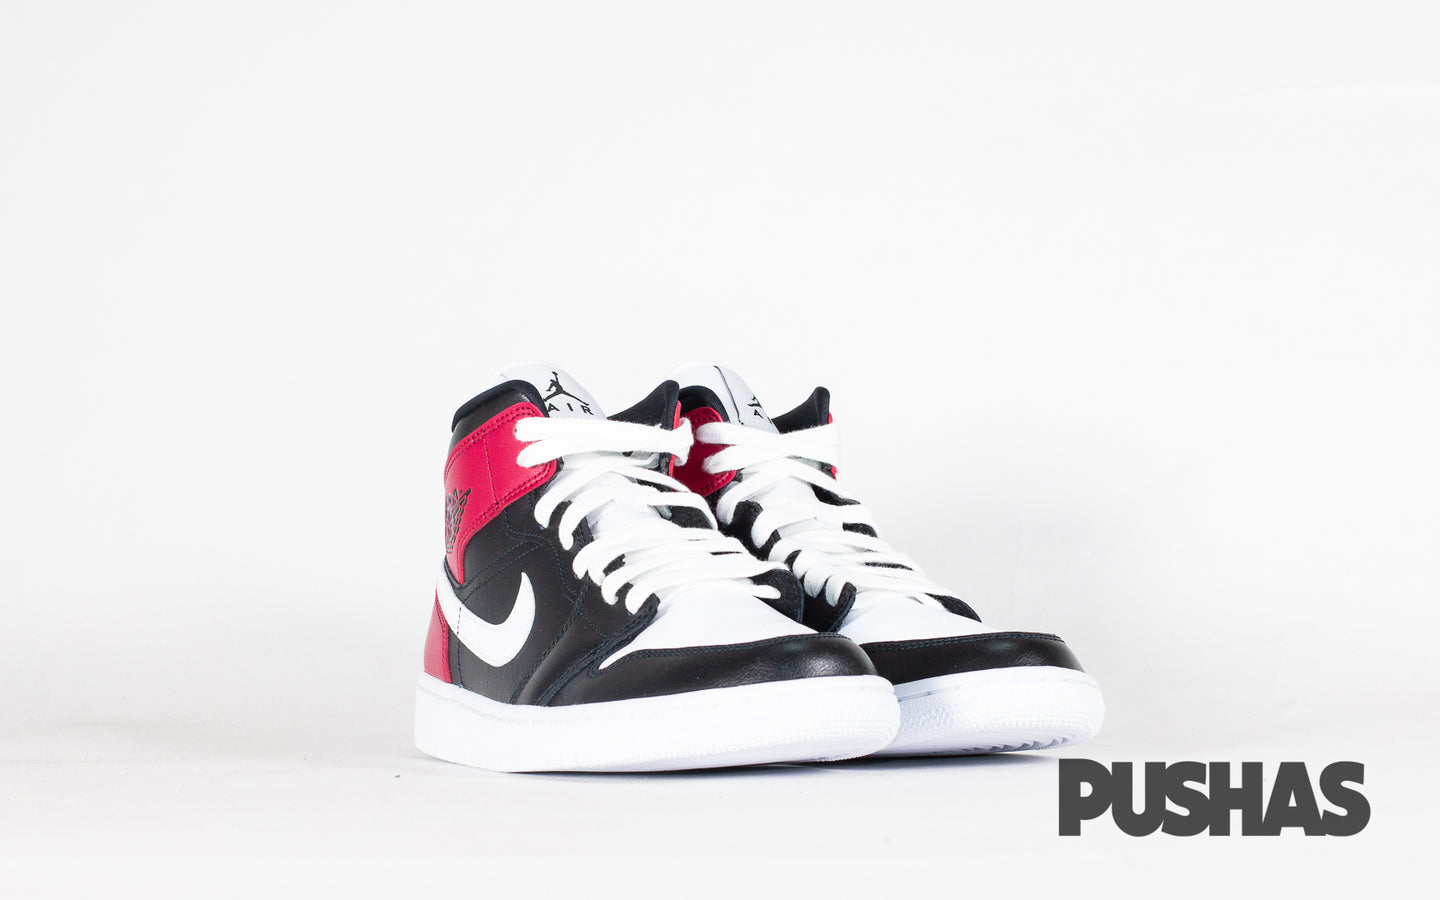 pushas-nike-Air-Jordan-1-Mid-Noble-W